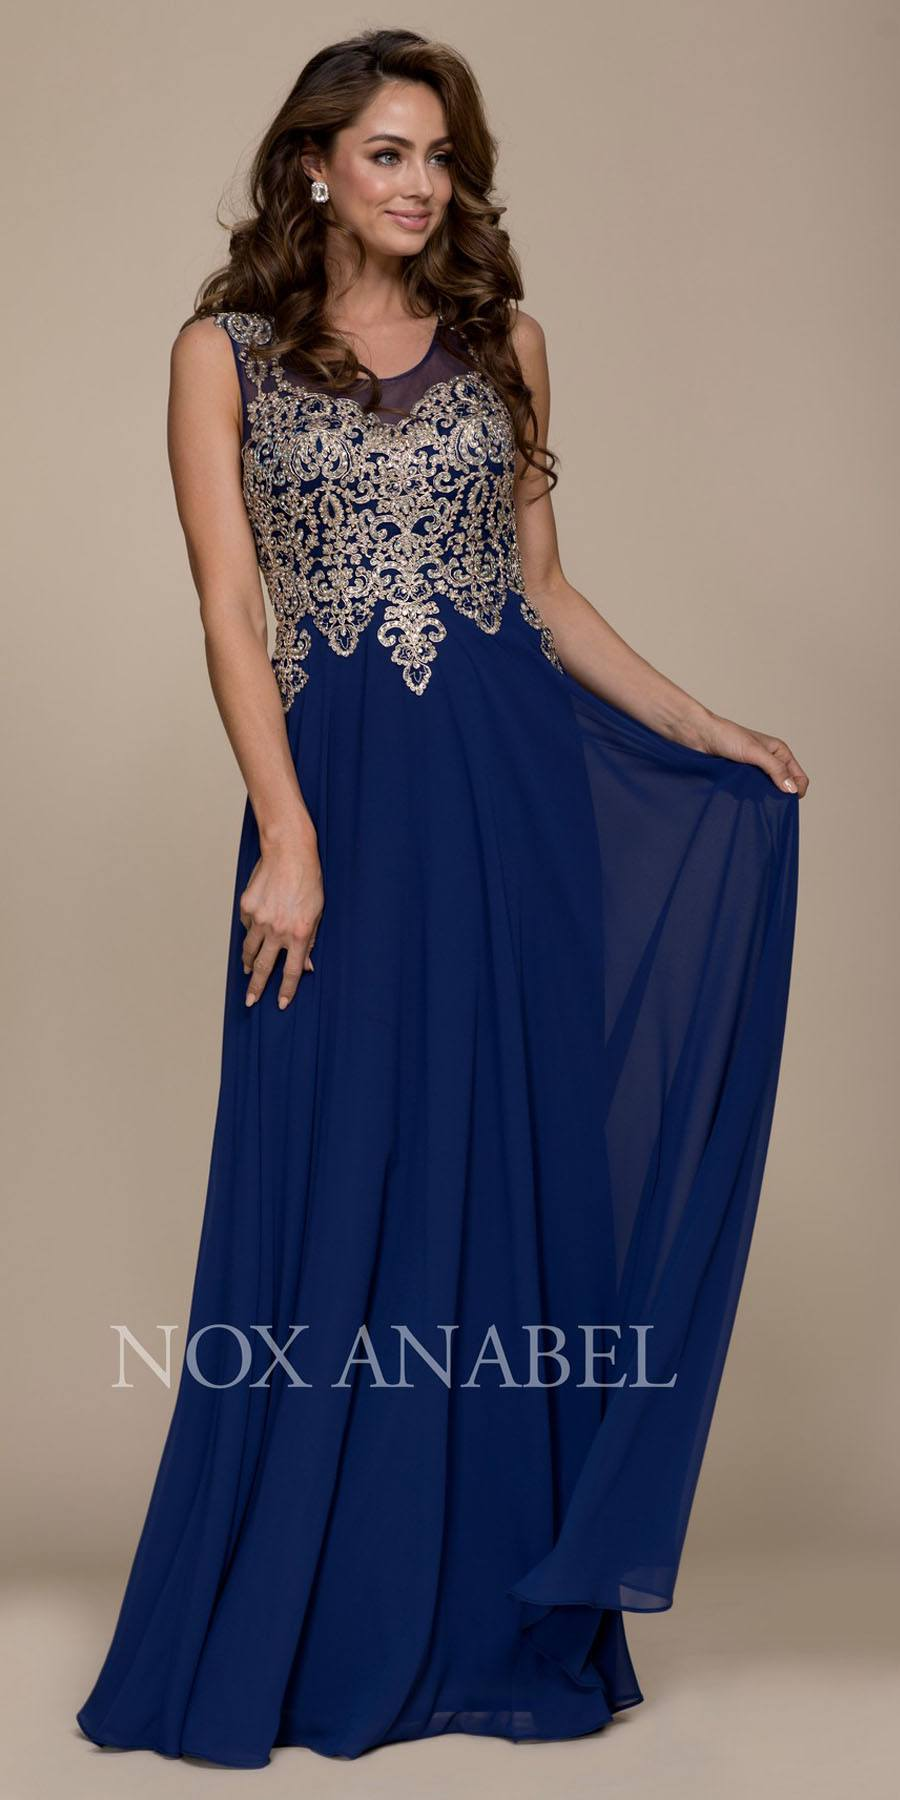 Nox Anabel Y100 Sleeveless Long Formal Dress Embroidered Bodice Navy